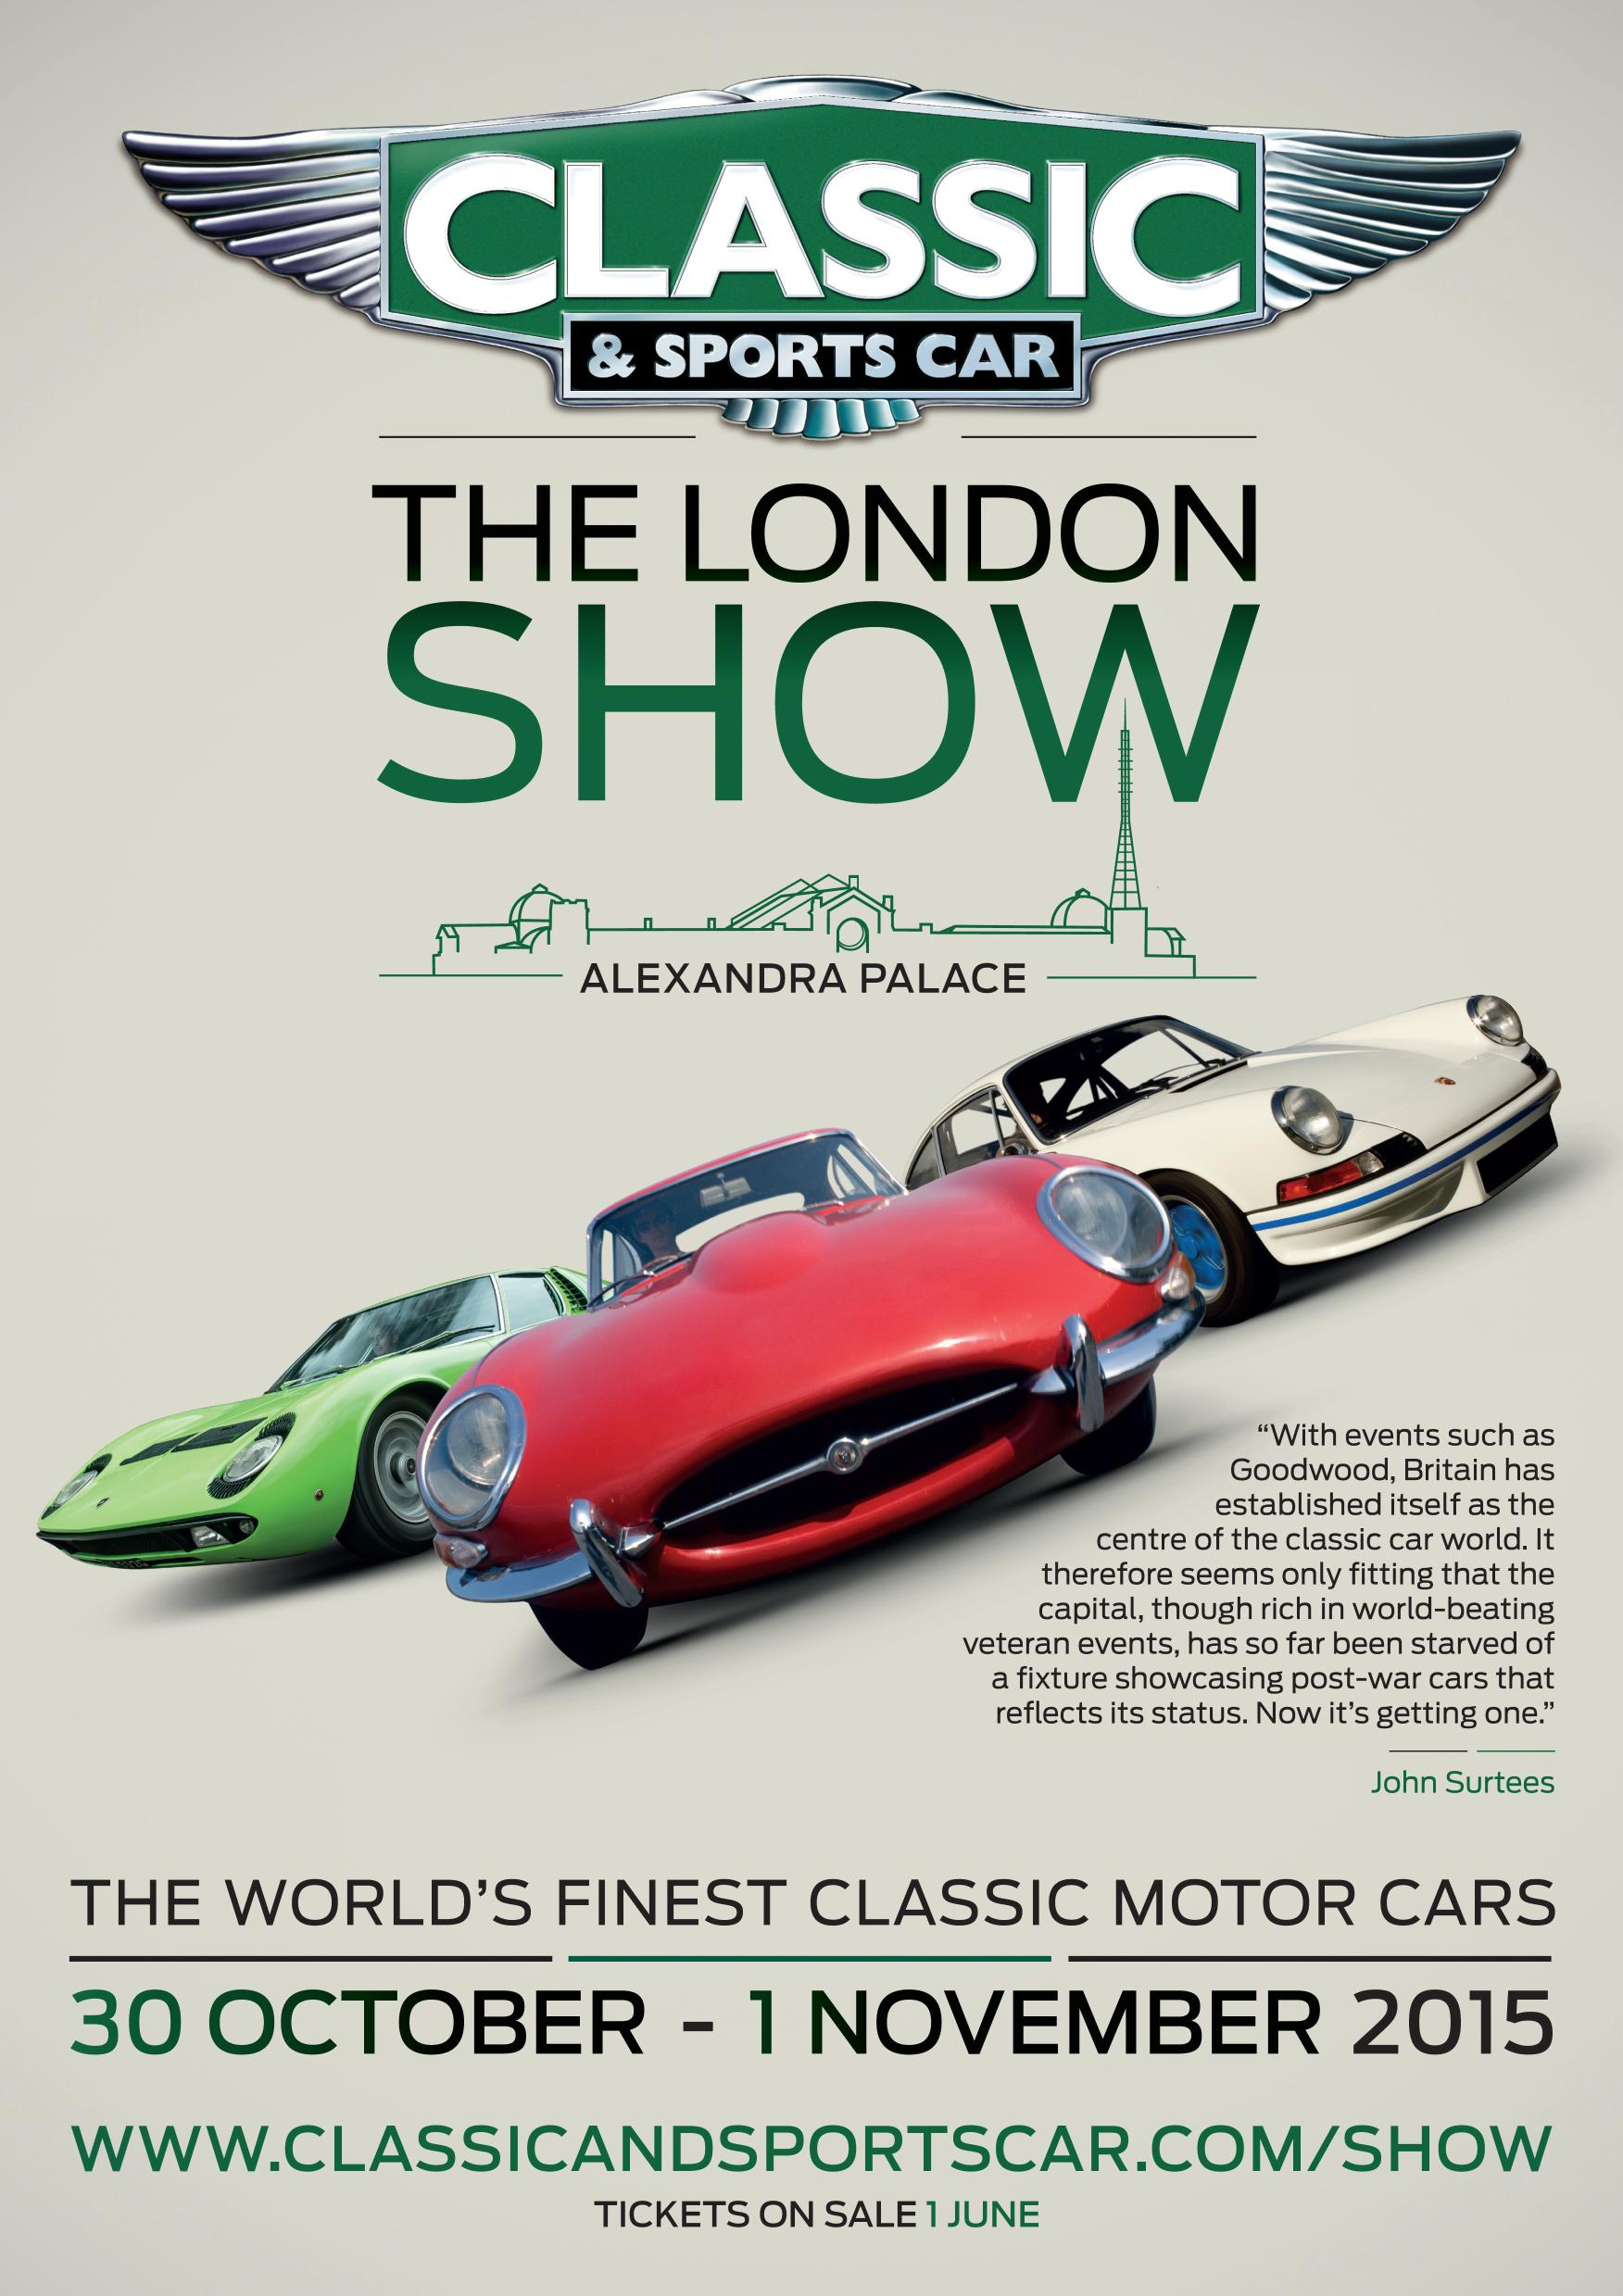 Classic & Sports Car – The London Show | Classic Car Magazine ...